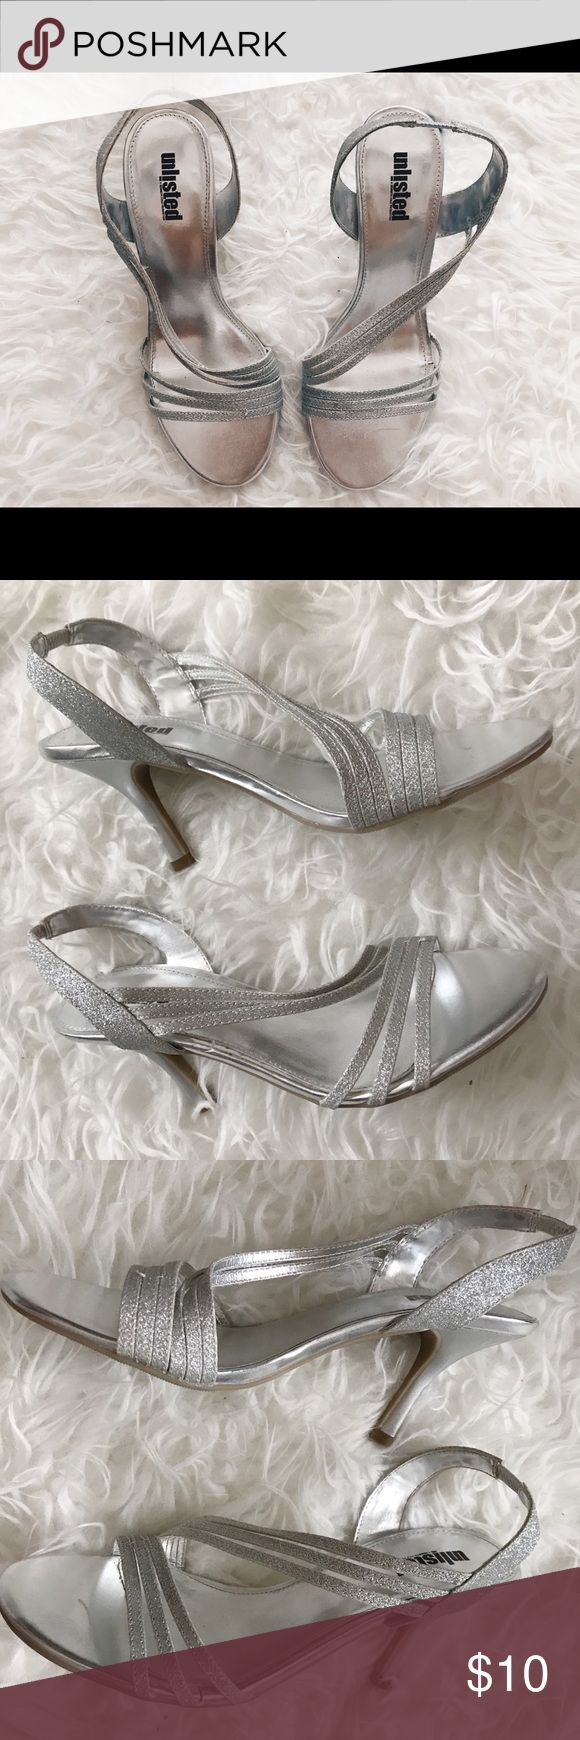 Unlisted: Silver sparkly heels Silver sparkle heels perfect for HC, Prom, and formal events. Elastic sling back Unlisted Shoes Heels #promheelssparkly #promheelssilver